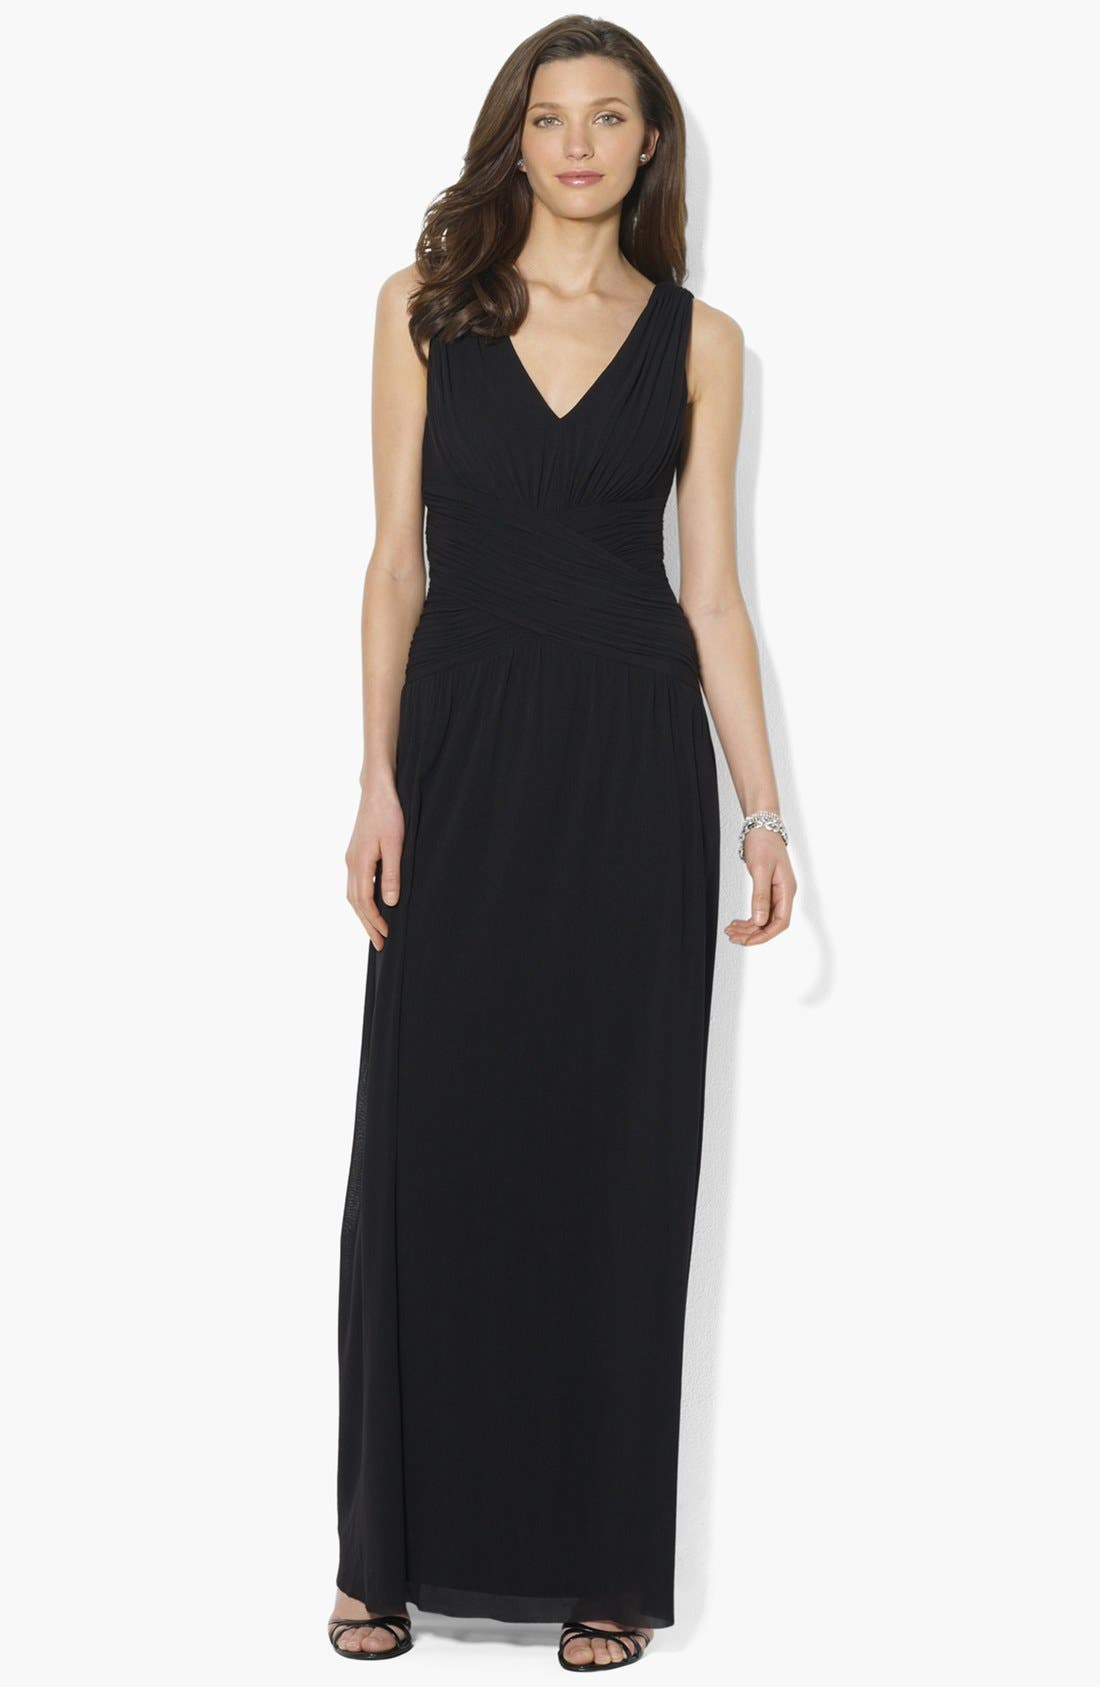 Alternate Image 1 Selected - Lauren Ralph Lauren Sleeveless Shirred Dress (Regular & Petite)